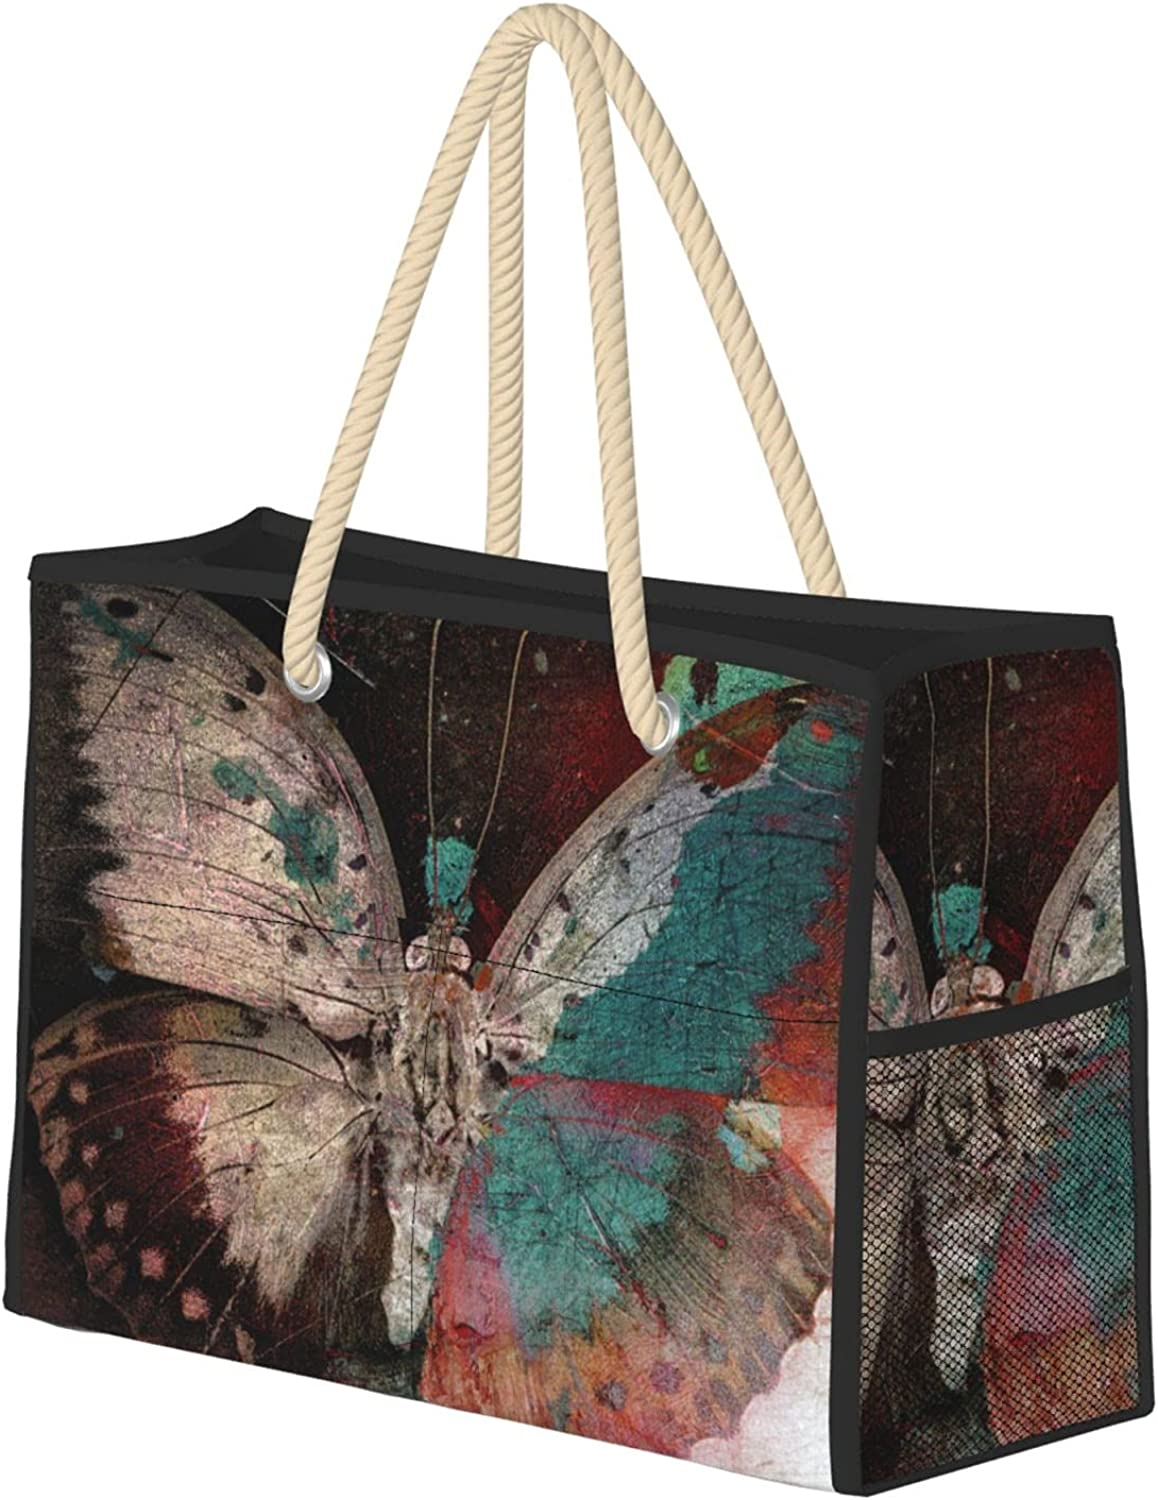 Butterfly Grunge Image Women Beach Tote Bag Limited time for free shipping Tr With Zipper Special Campaign Large